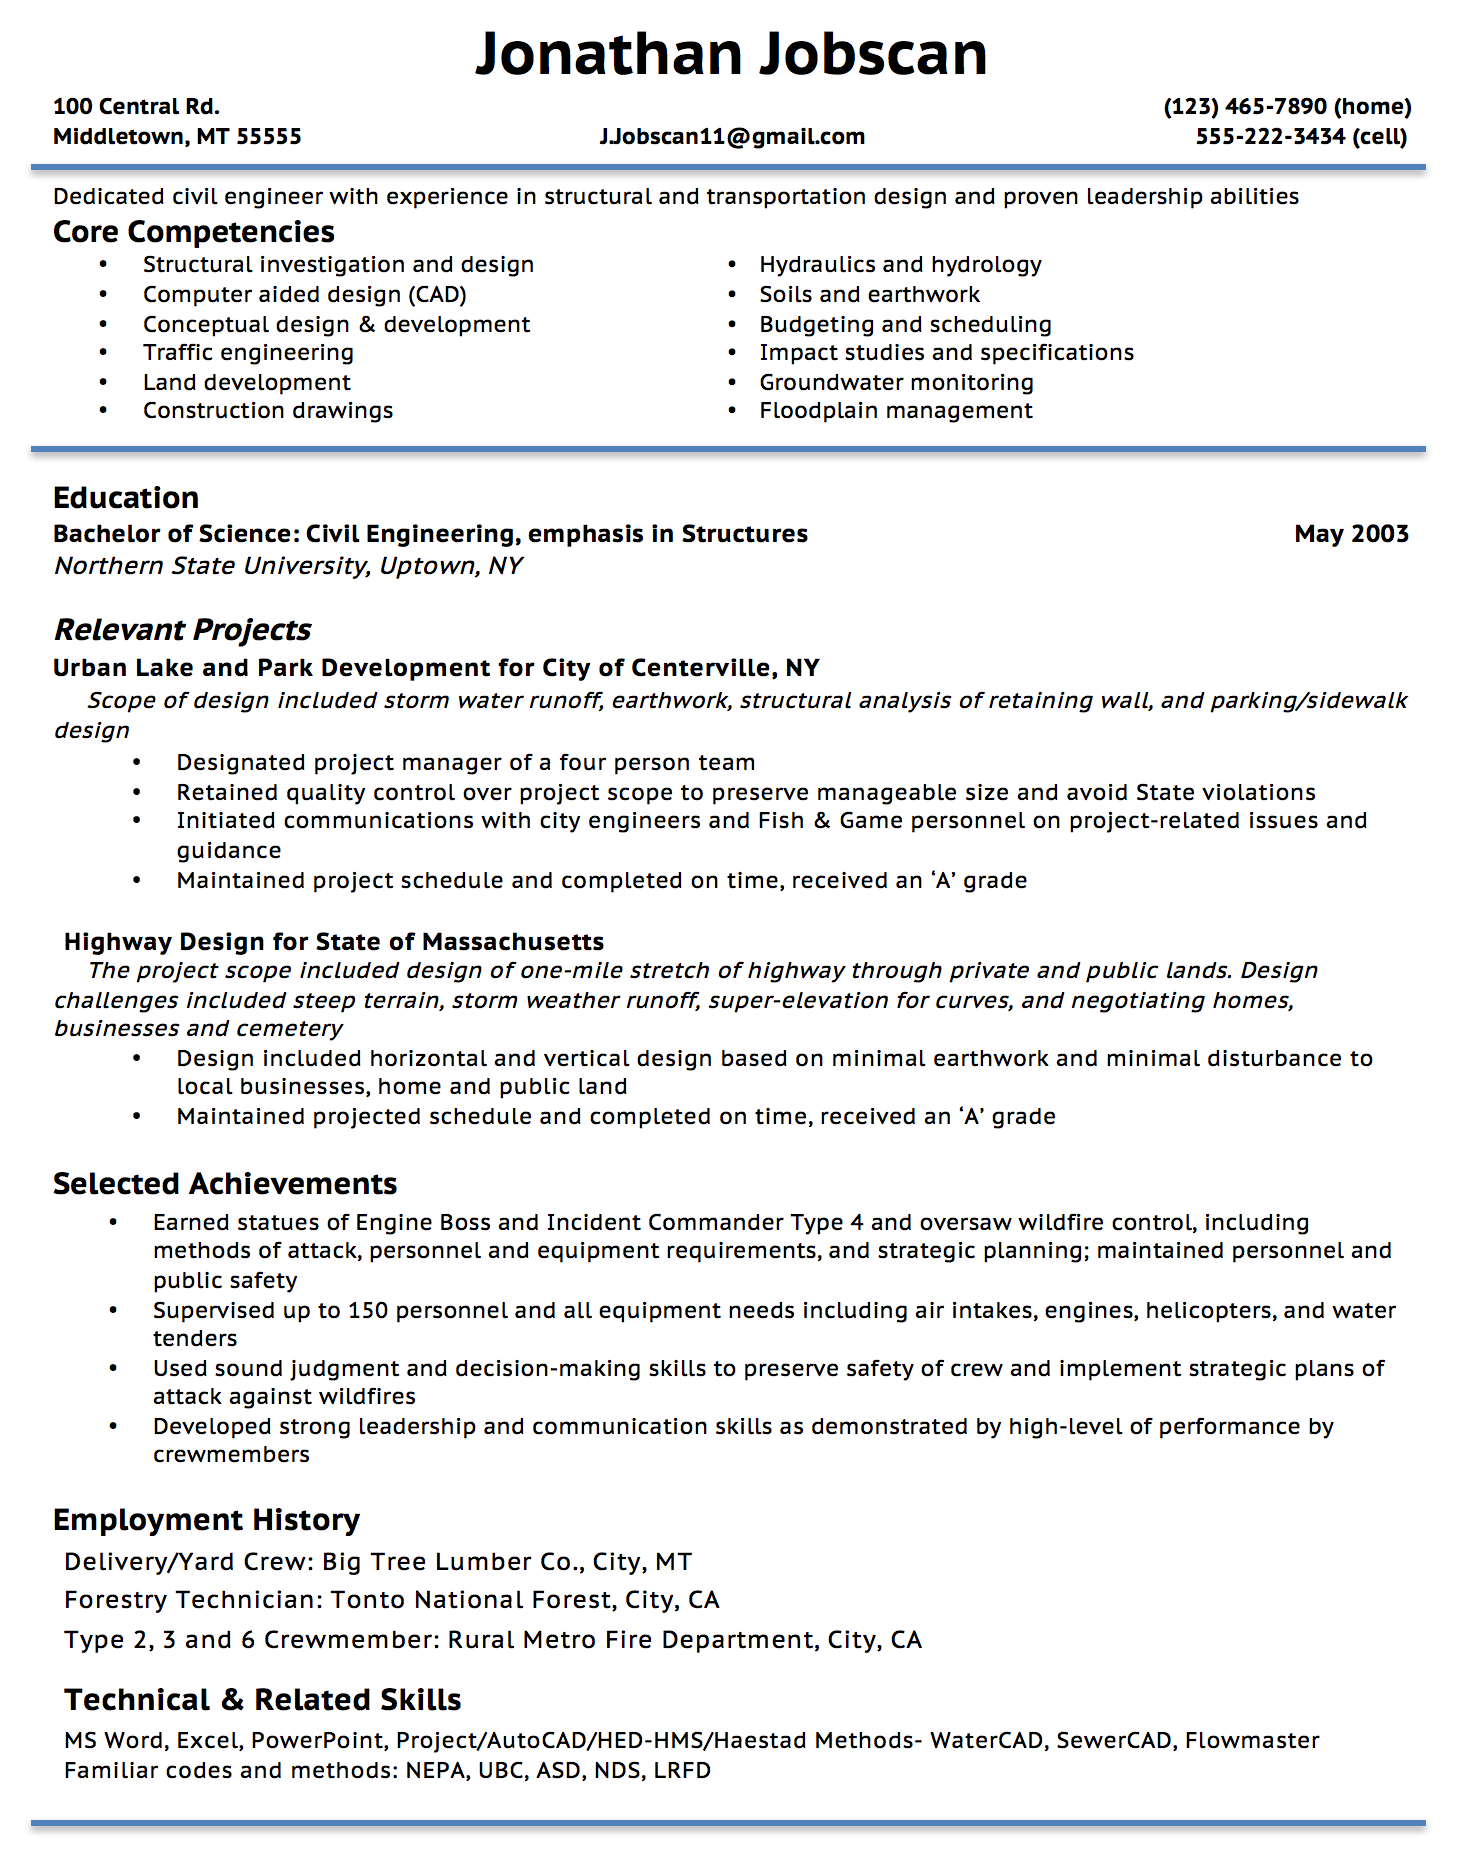 Opposenewapstandardsus  Surprising Resume Writing Guide  Jobscan With Exquisite Example Of A Functional Resume Format With Divine Undergraduate Resume Template Also Top Resume Writing Service In Addition How To Make Job Resume And Computer Skills In Resume As Well As Roofer Resume Additionally Pdf Resume Builder From Jobscanco With Opposenewapstandardsus  Exquisite Resume Writing Guide  Jobscan With Divine Example Of A Functional Resume Format And Surprising Undergraduate Resume Template Also Top Resume Writing Service In Addition How To Make Job Resume From Jobscanco